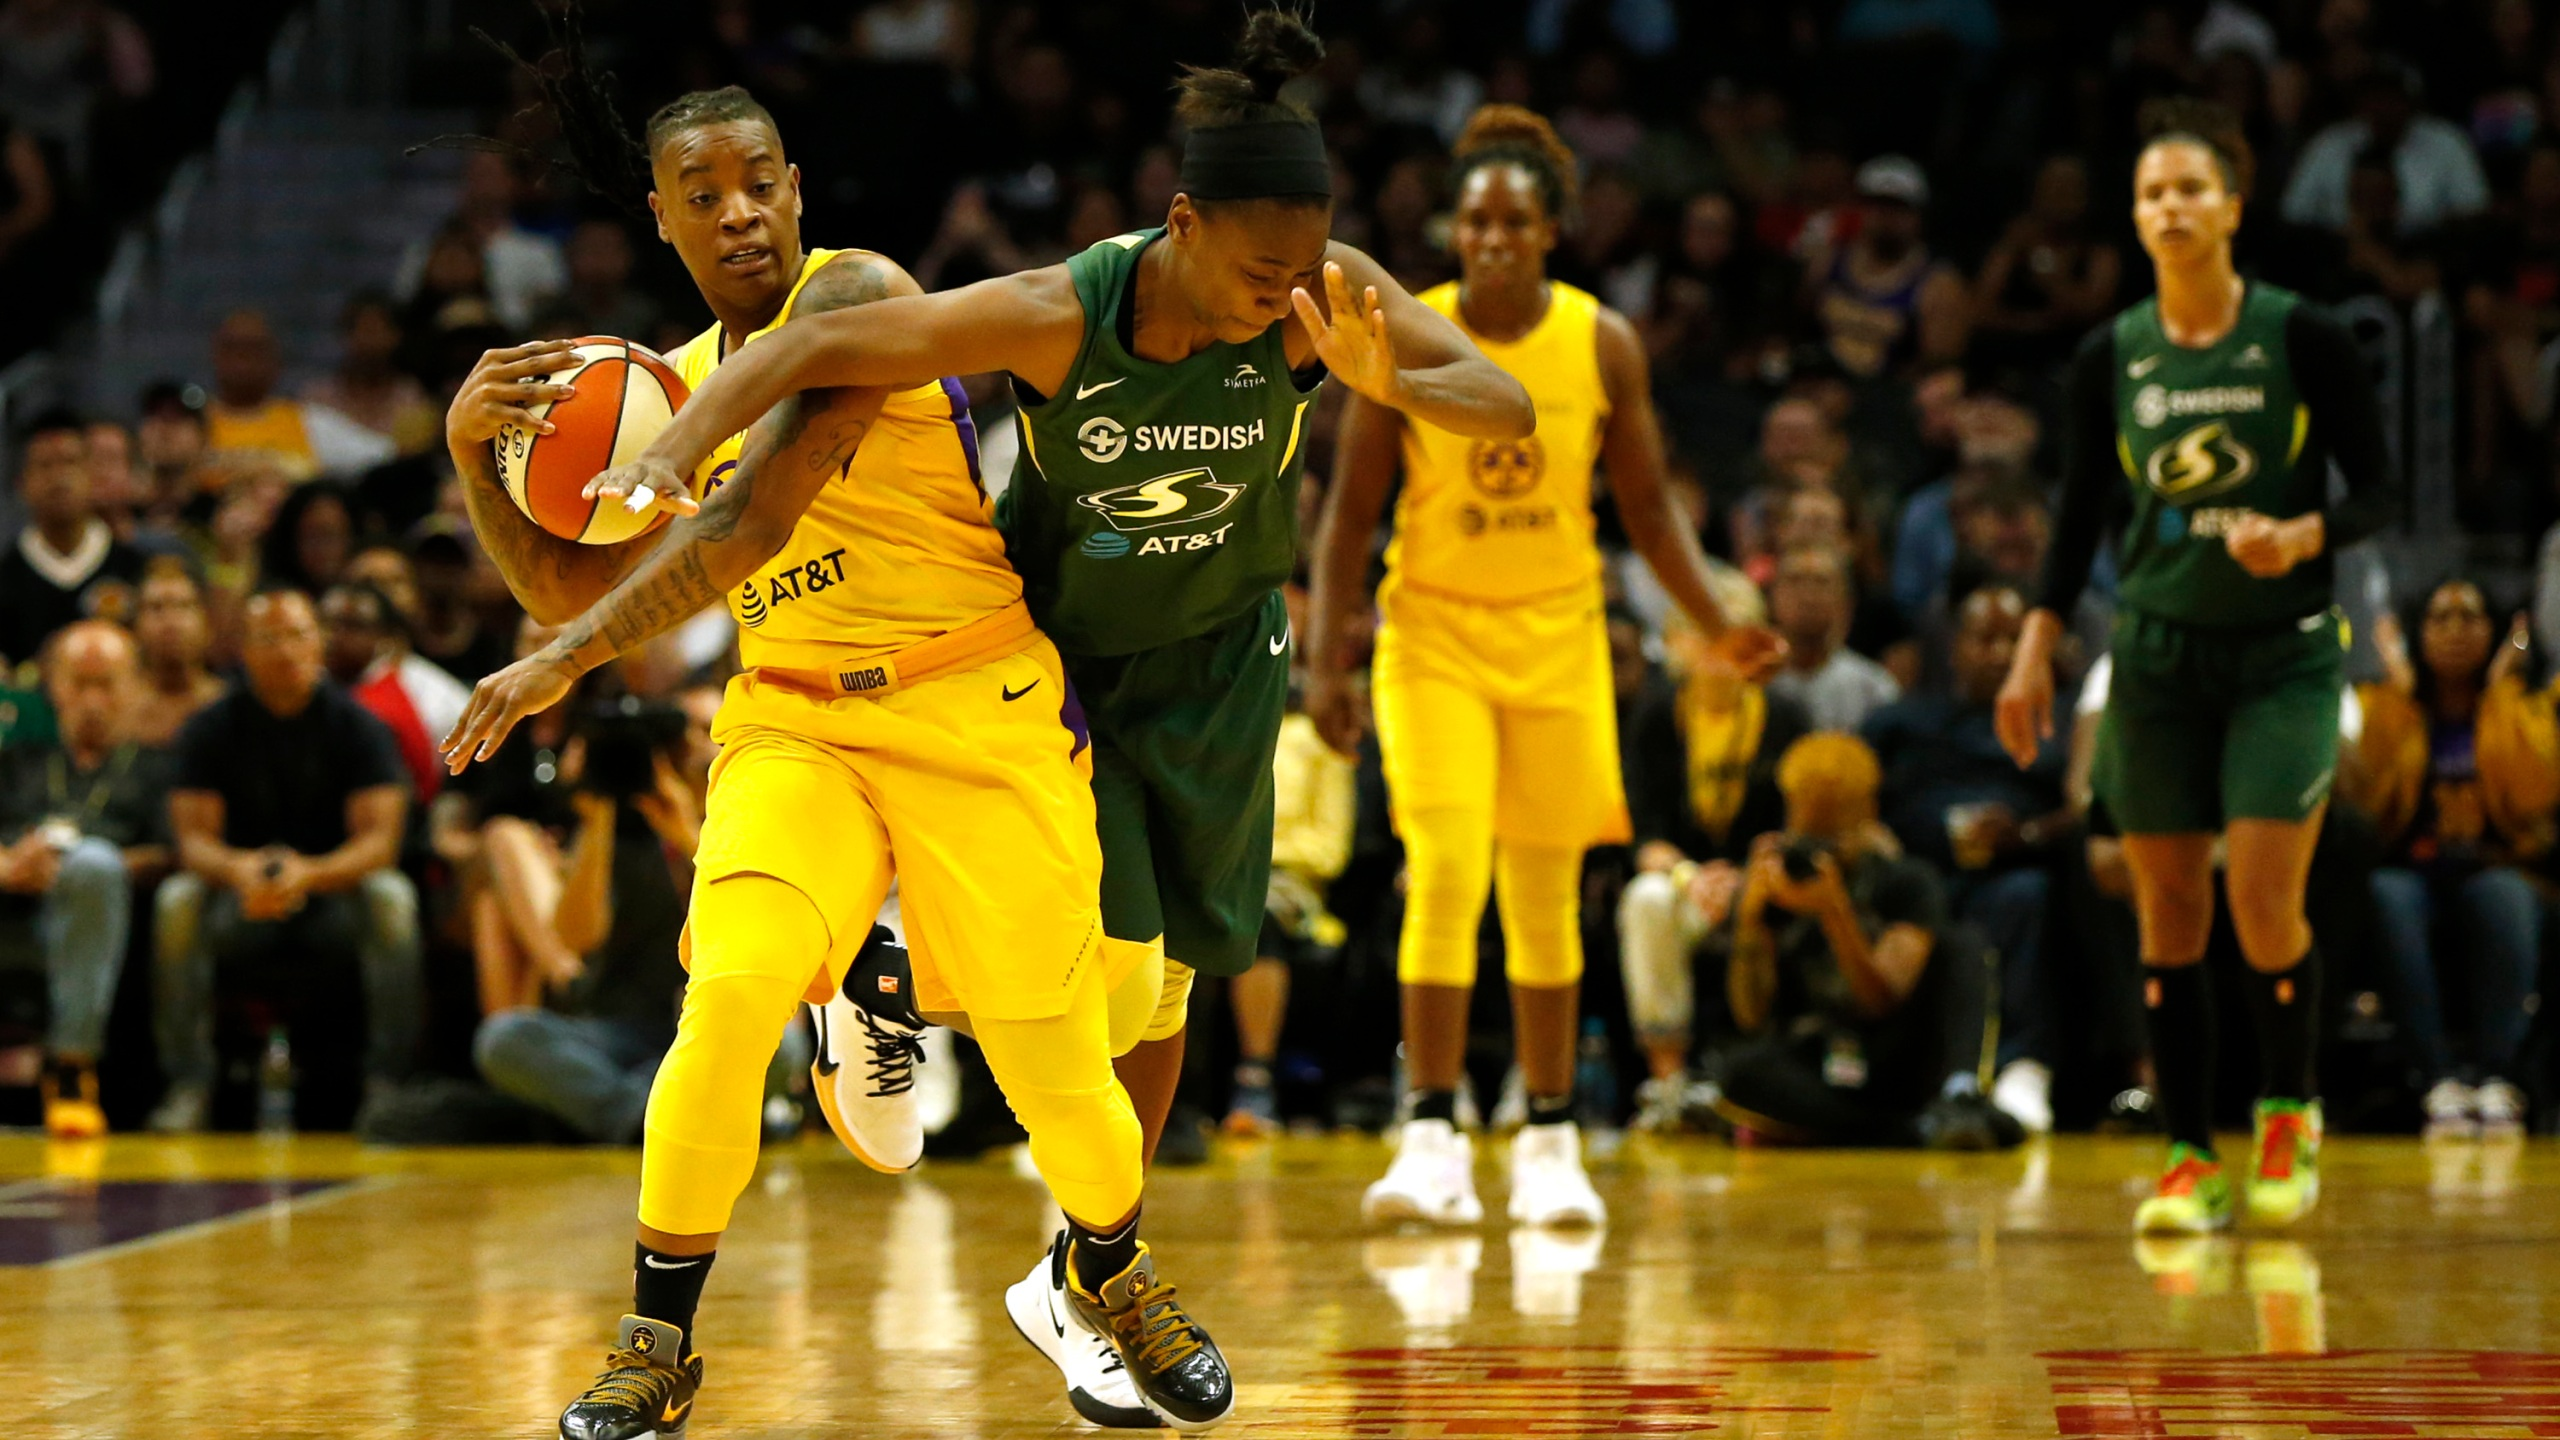 Guard Riquna Williams #2 of the Los Angeles Sparks and guard Jewell Loyd #24 of the Seattle Storm fight for a jump ball during the second half of a game at Staples Center on Sept. 15, 2019. (Katharine Lotze/Getty Images)